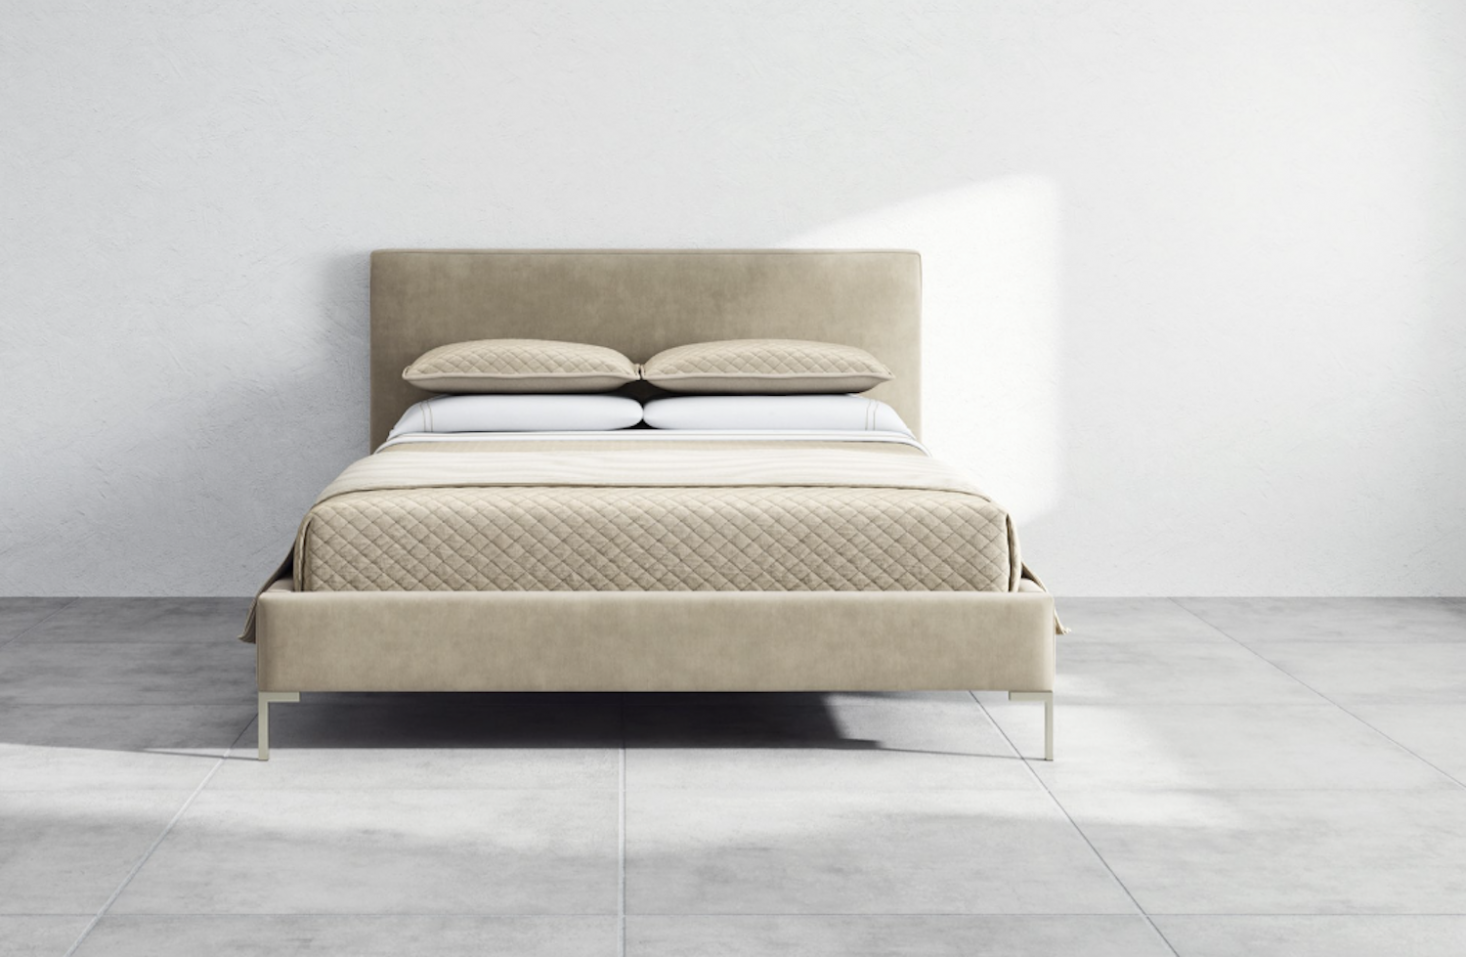 From mattress company Saatva, the Santorini Bed Frame is $src=